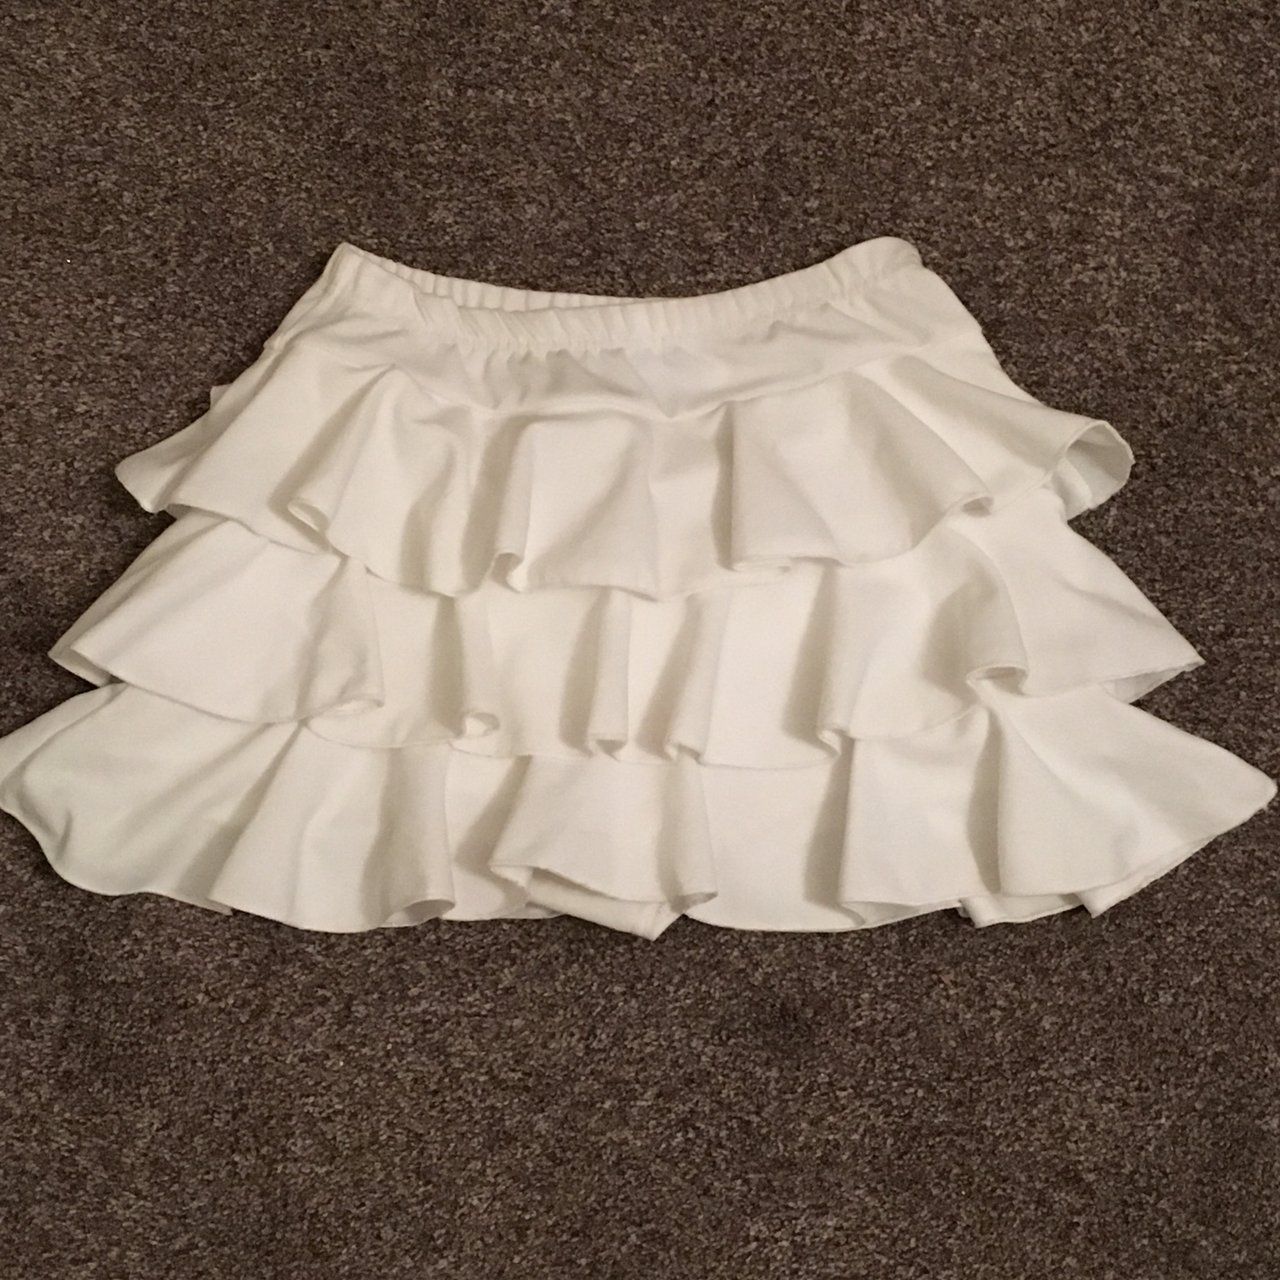 cb33a0c9d @samhbx. last month. Leicester, United Kingdom. White frill ruffle mini  skirt ...